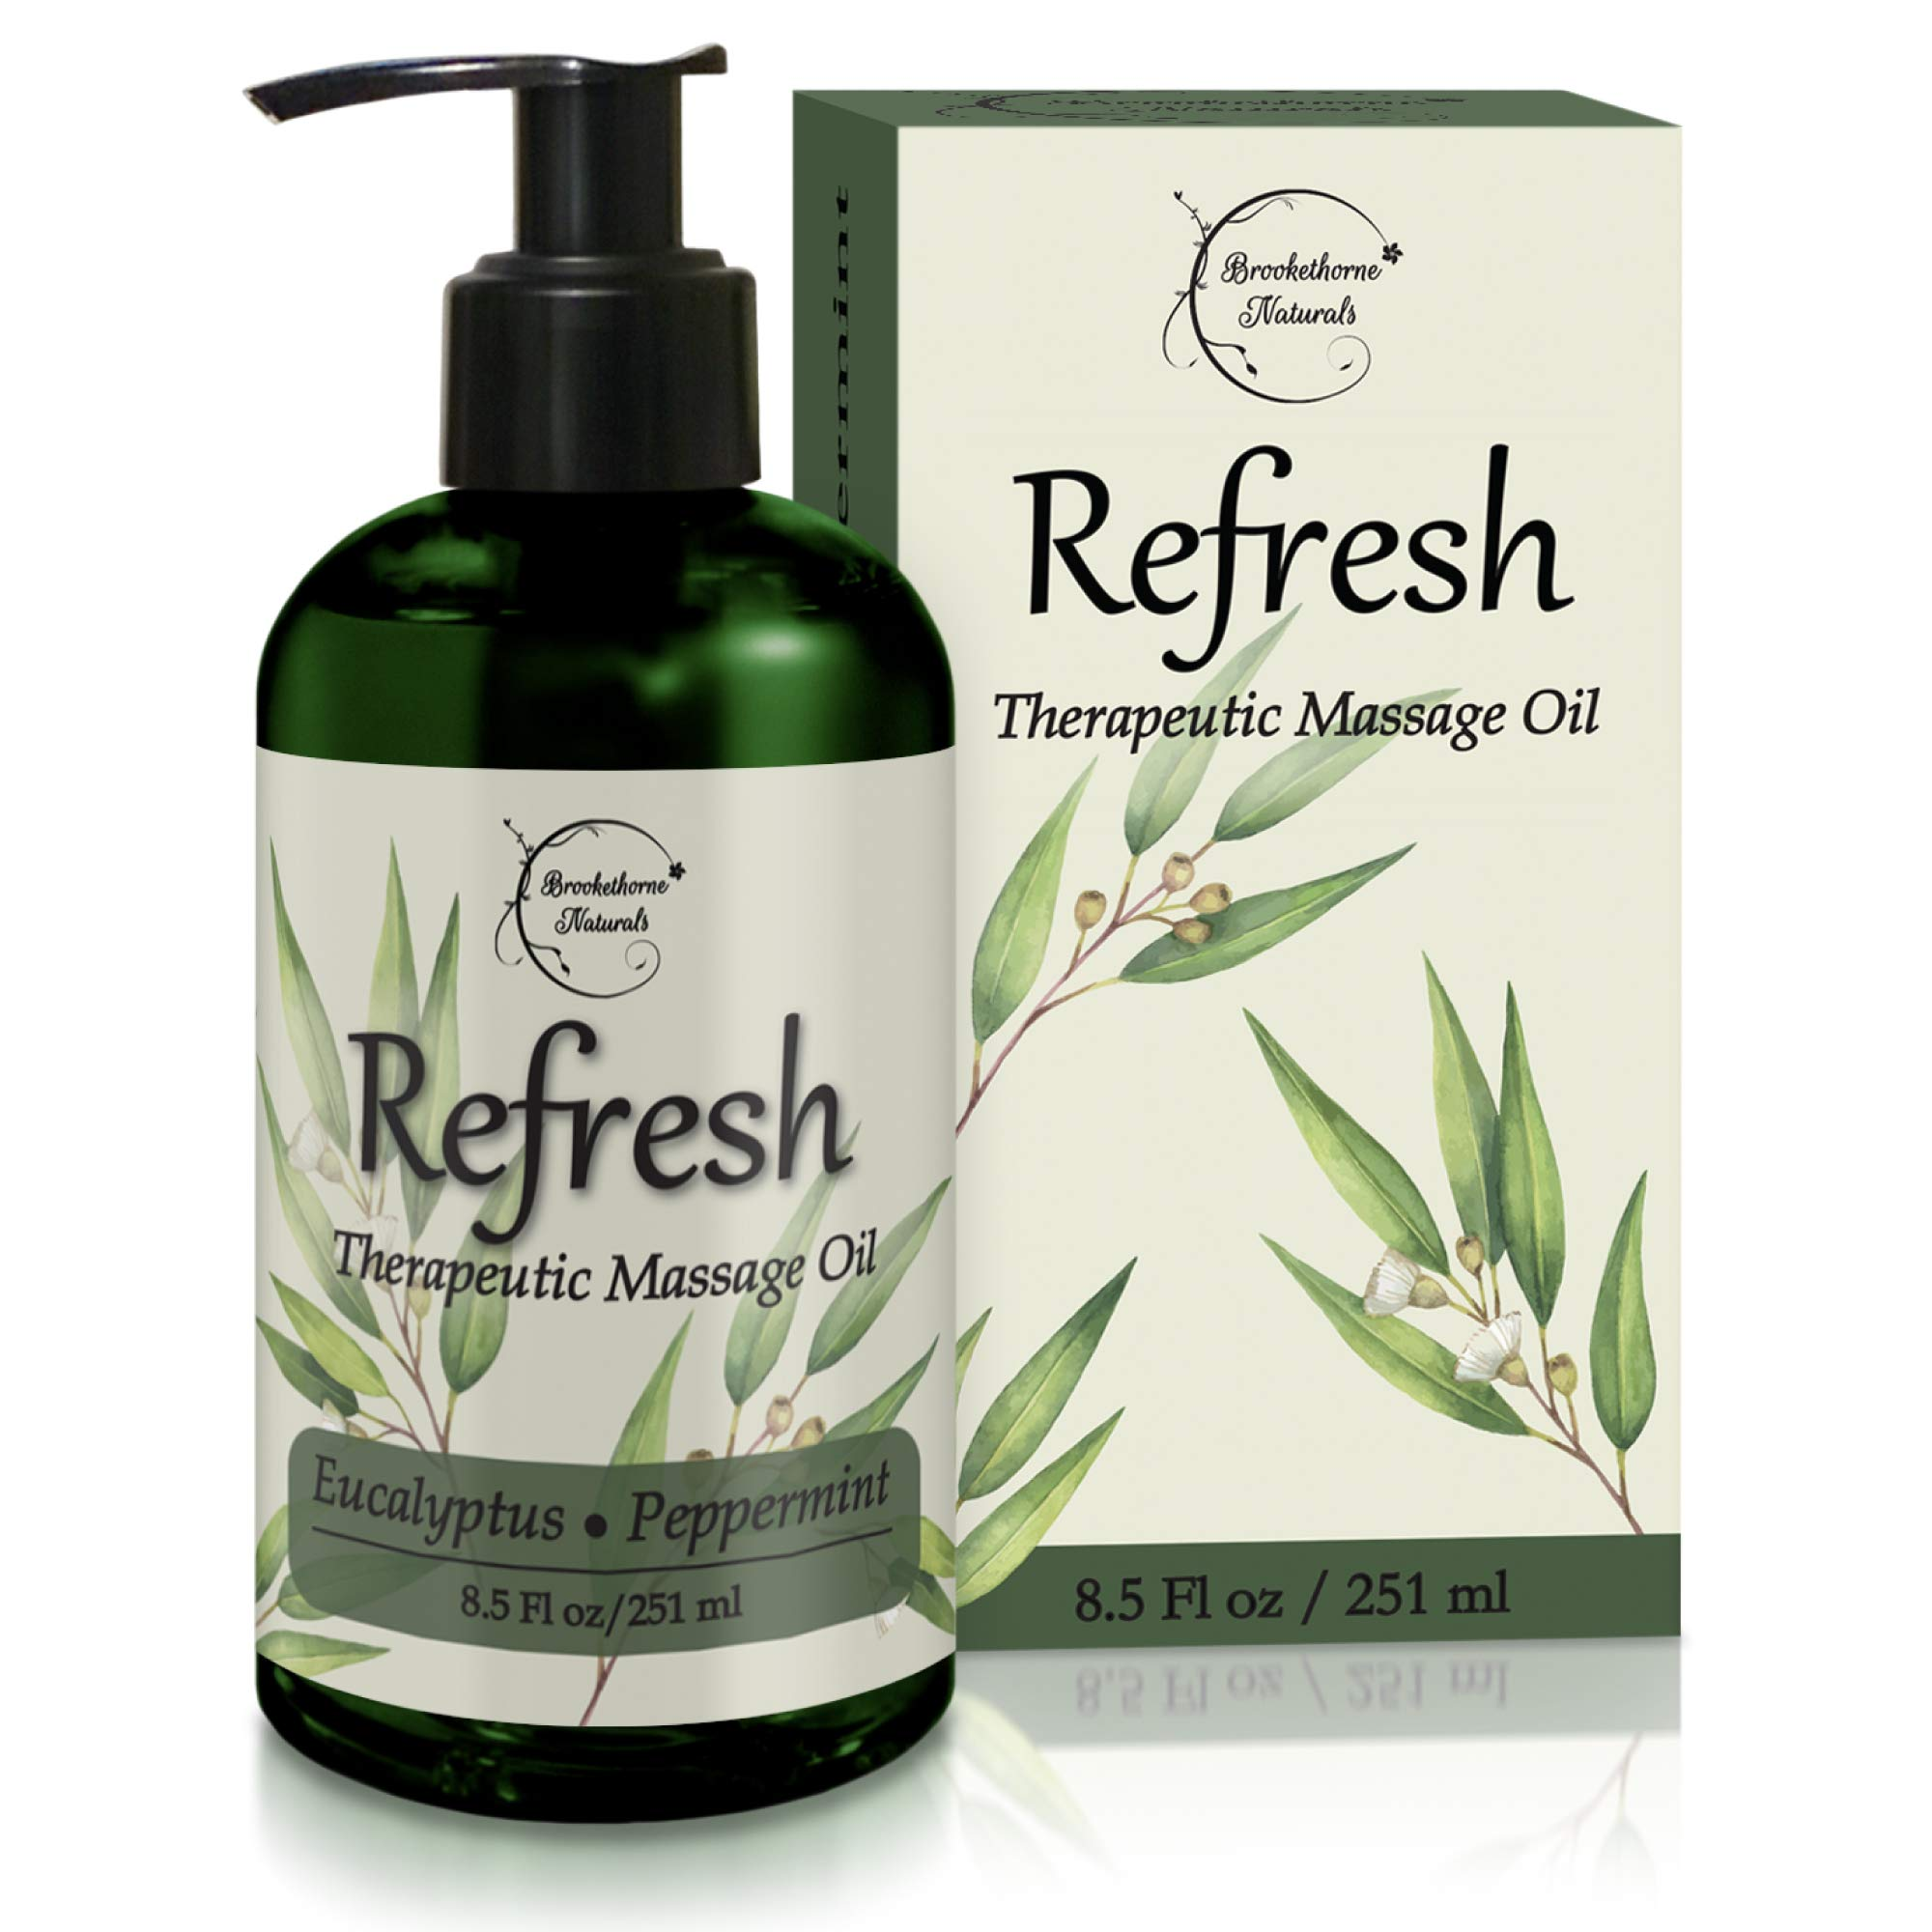 Refresh Massage Oil with Eucalyptus & Peppermint Essential Oils - Great for Massage Therapy. Stress Relief & All Natural Muscle Relaxer. Ideal for Full Body Massage - Nut Free Formula 8.5oz by Brookethorne Naturals